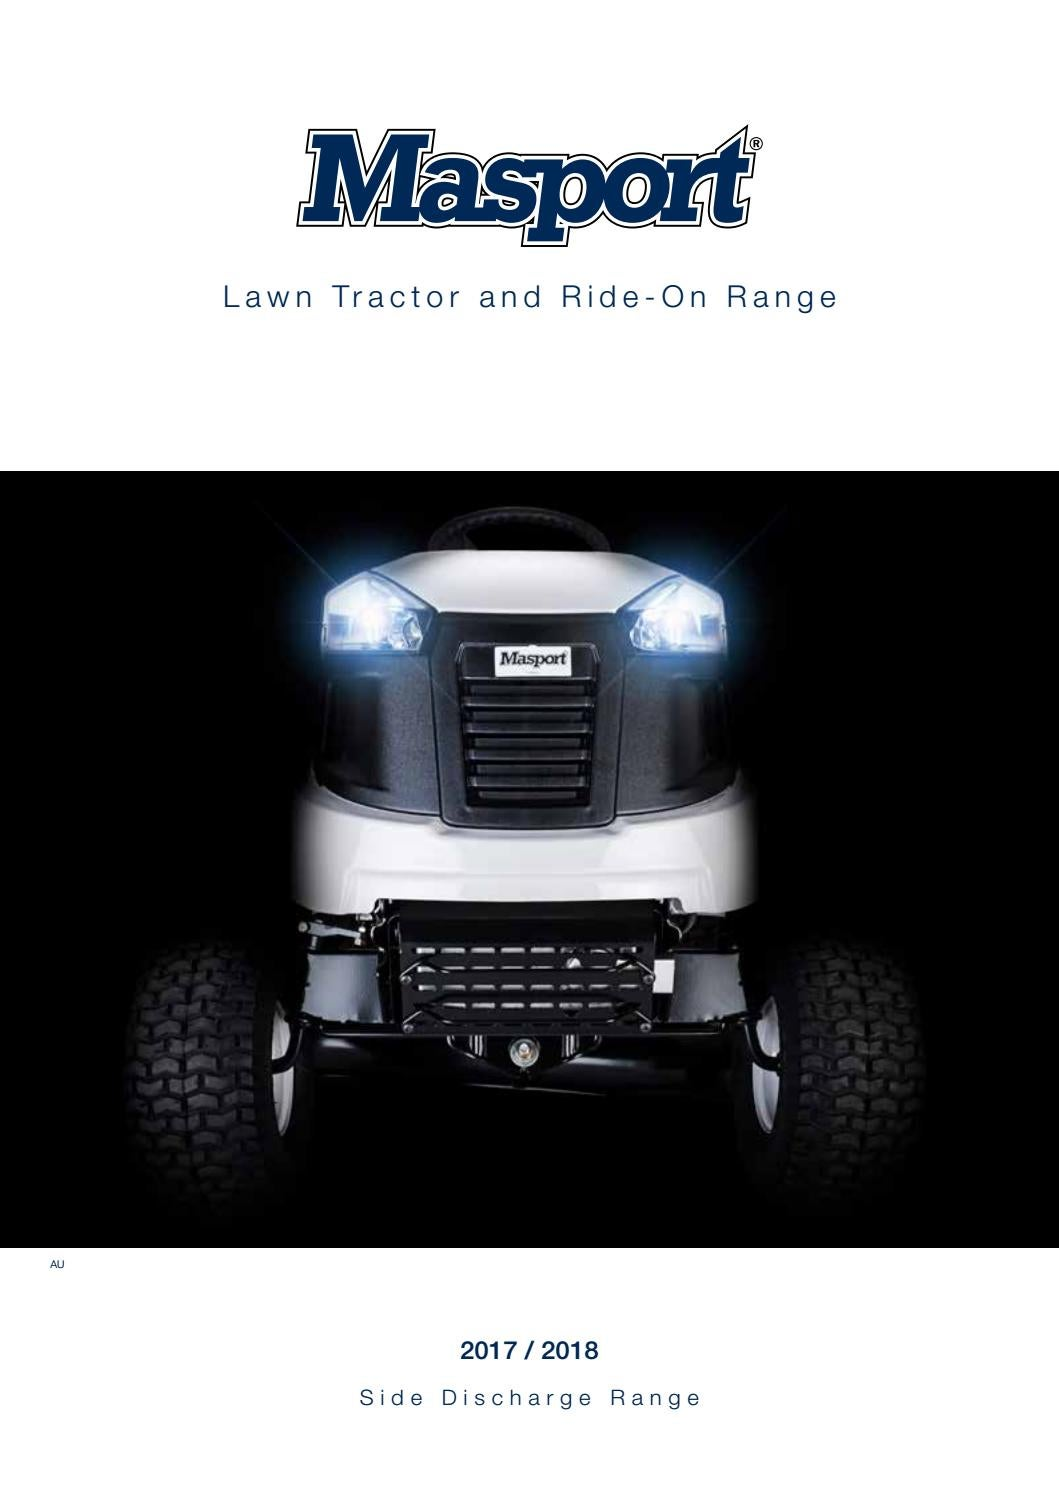 Masport Lawn Tractor and Ride-On Range SDR AU 2017-2018 by